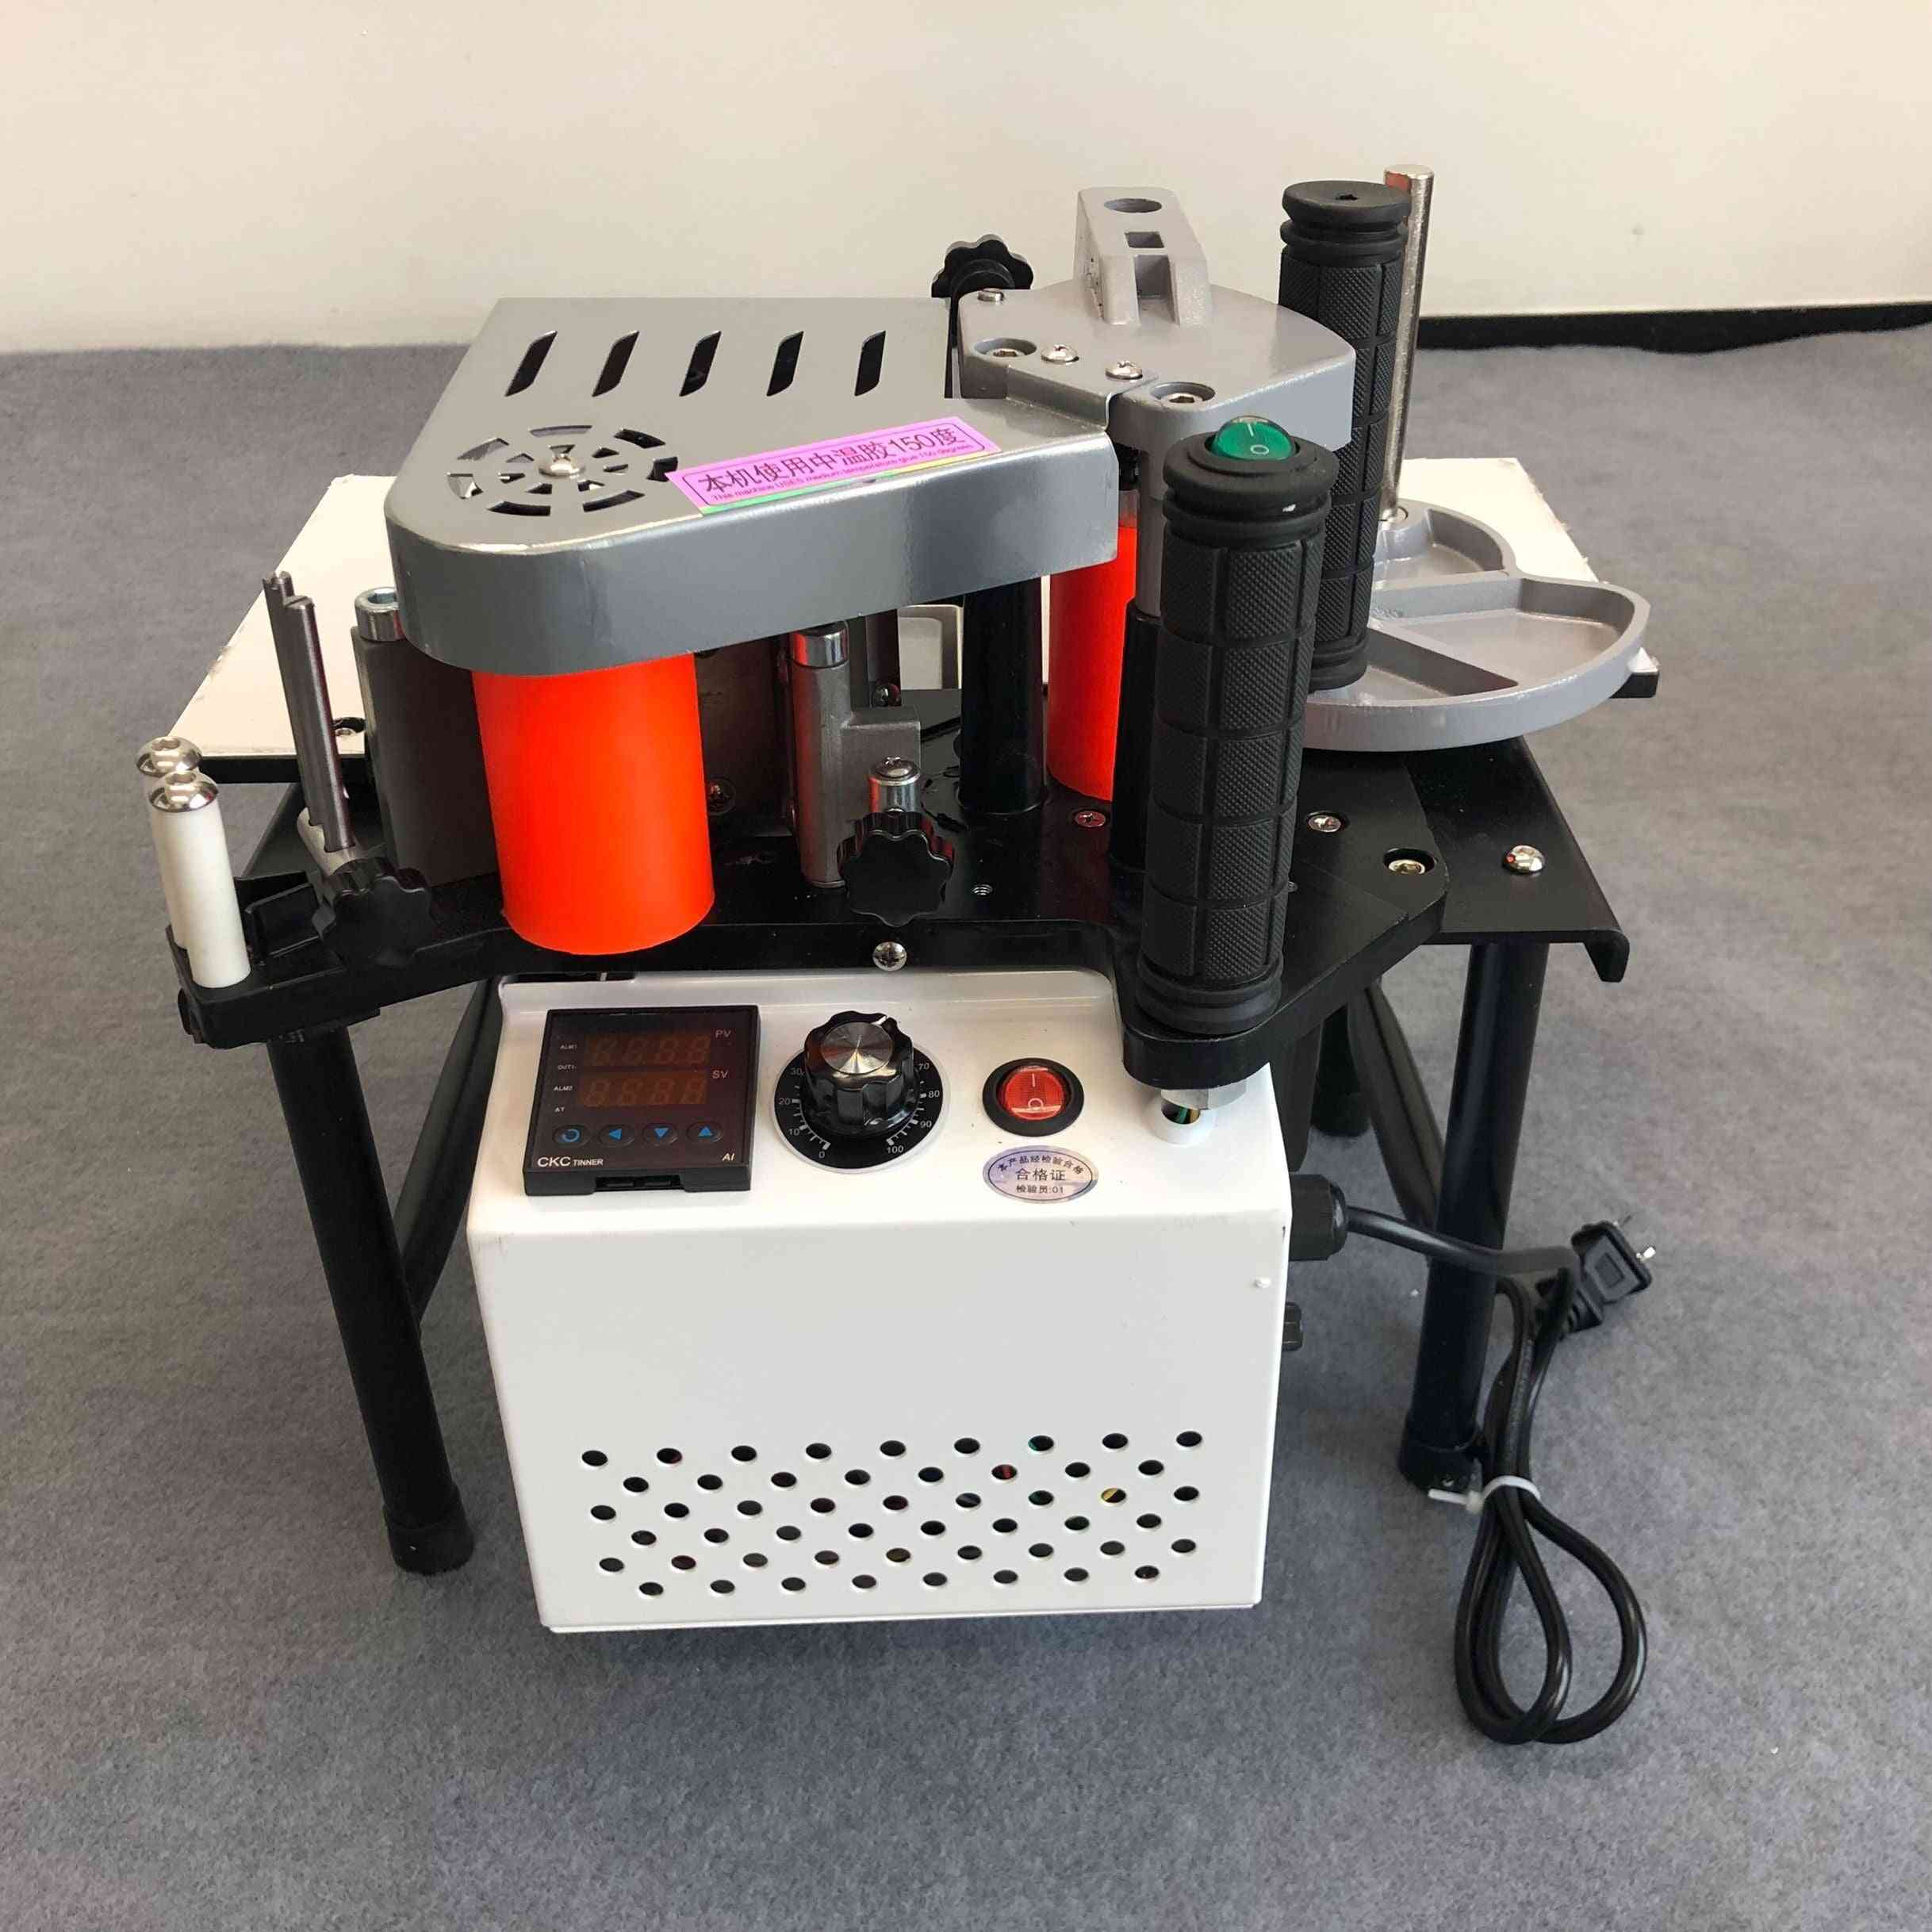 Portable Woodworking, Double-sided Adhesive, Edge Banding Machine